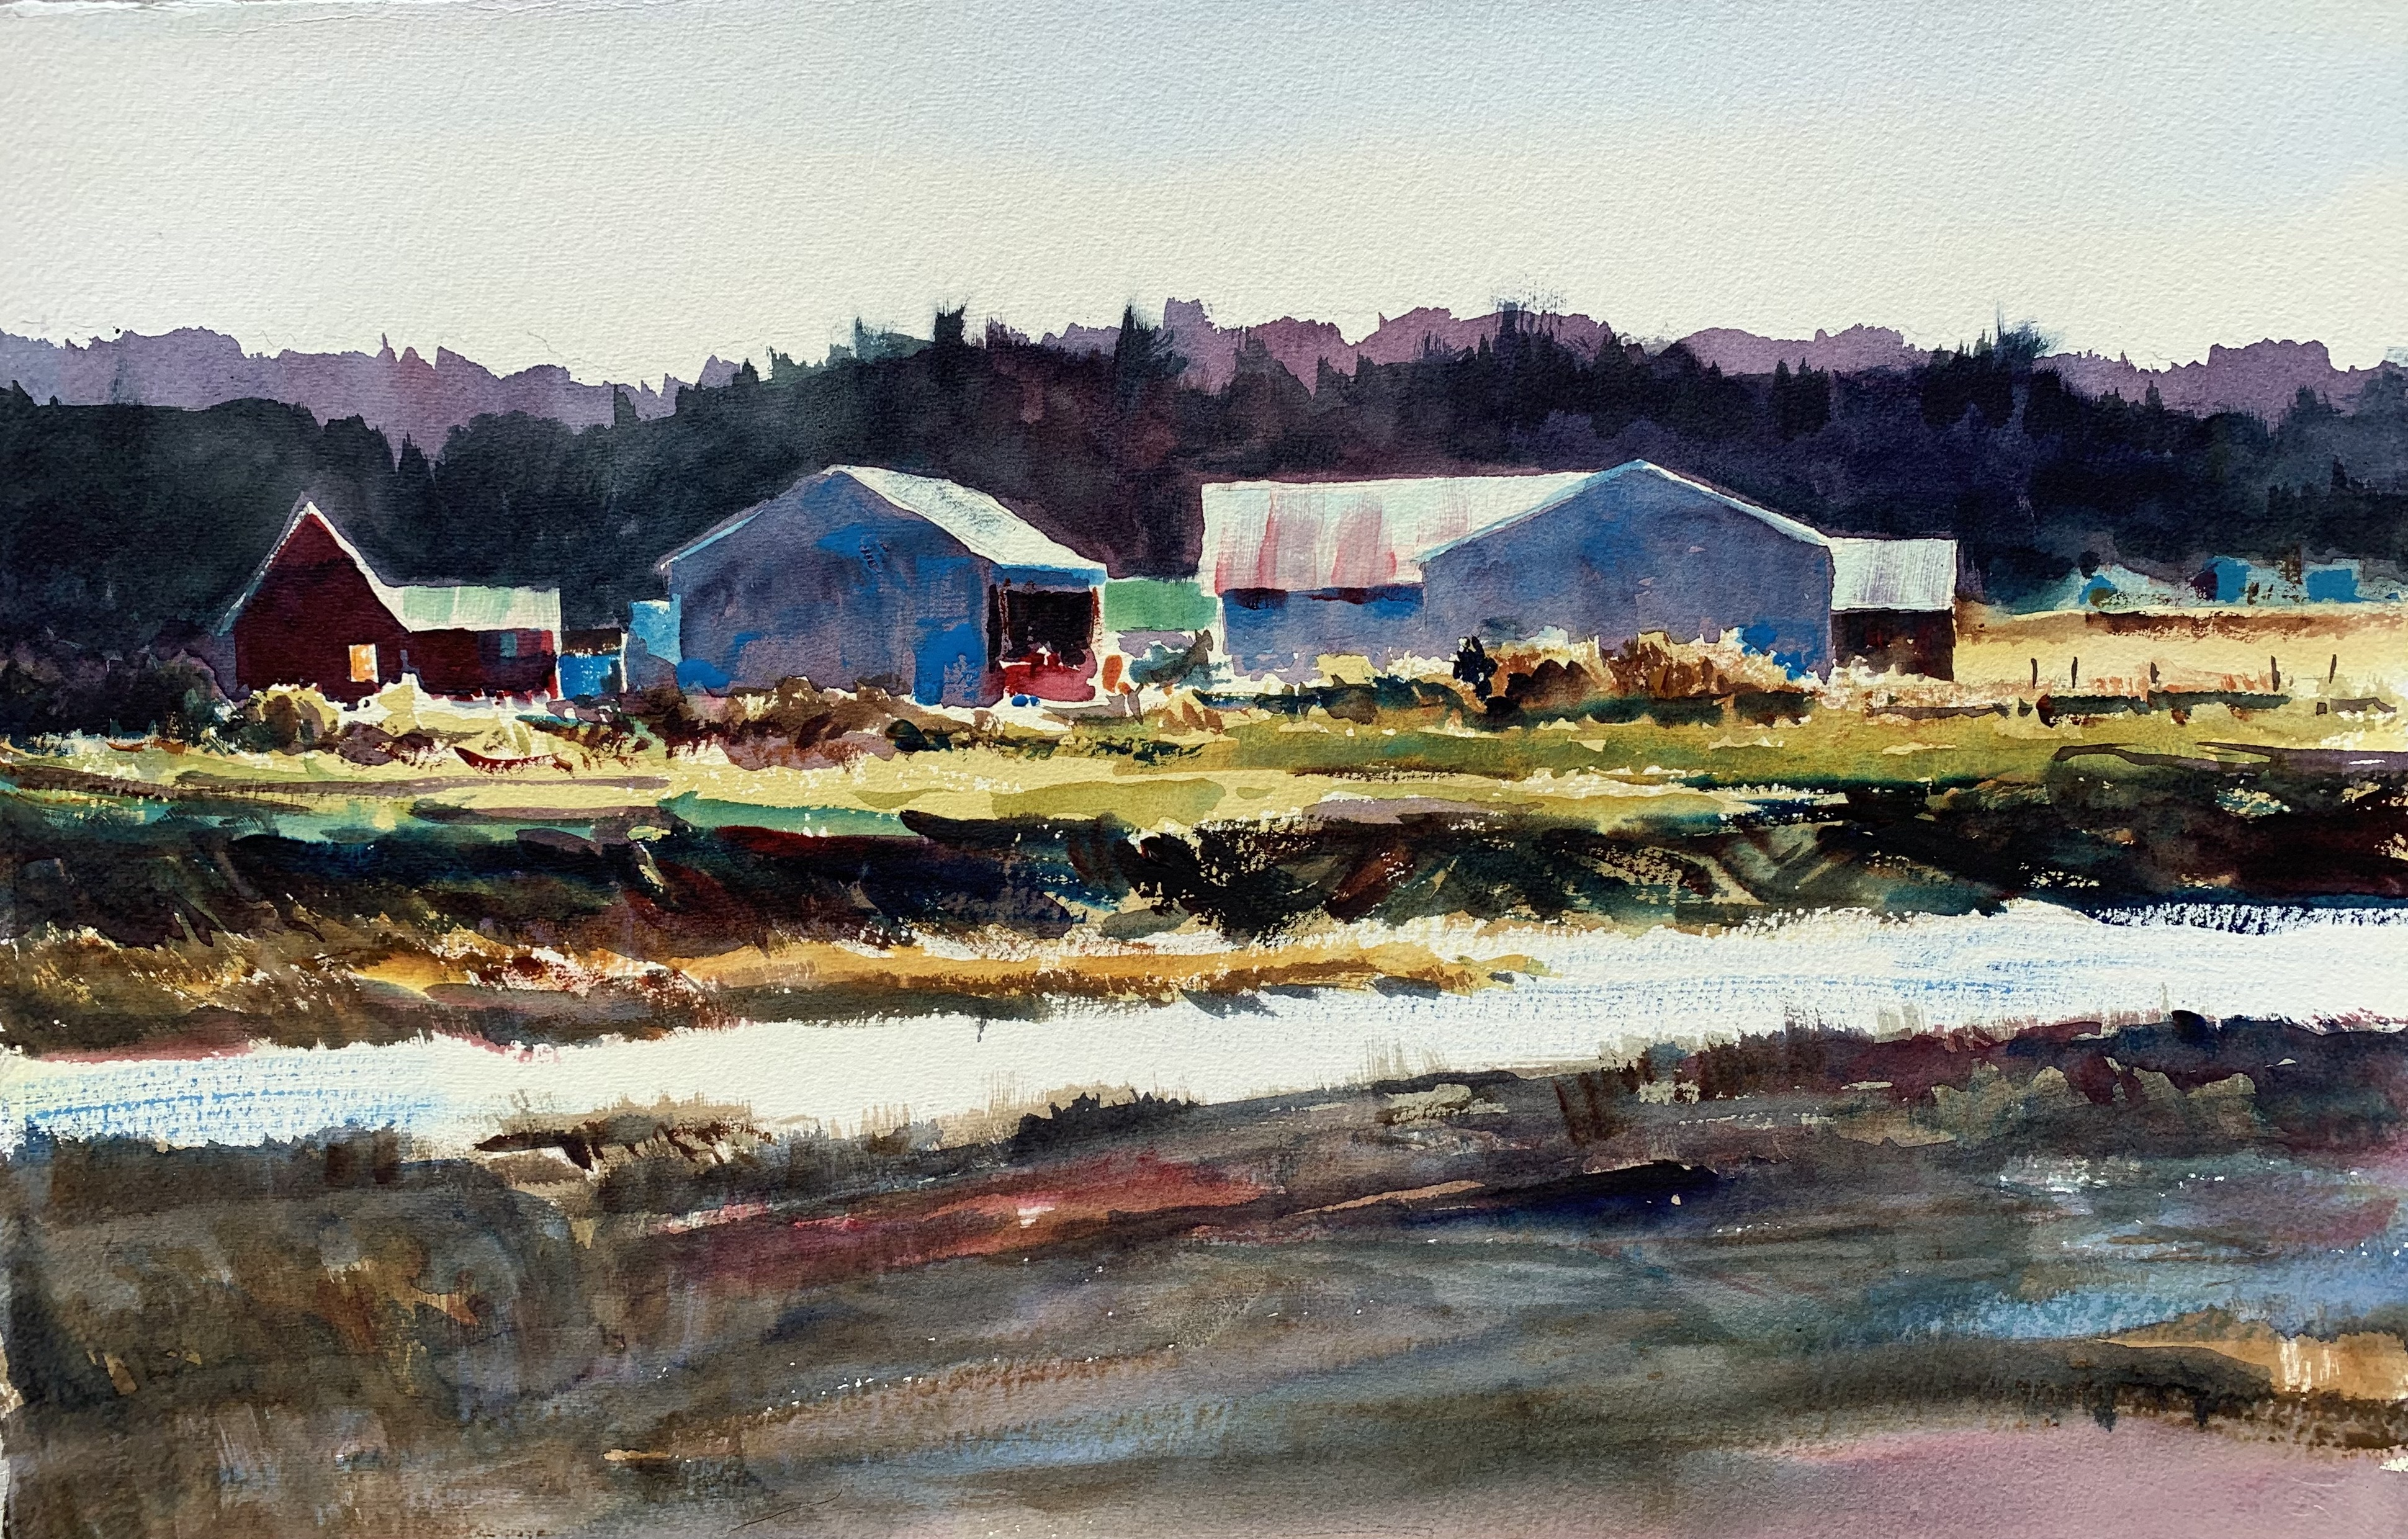 Painting Place: Impressions of Camano by Jason Dorsey